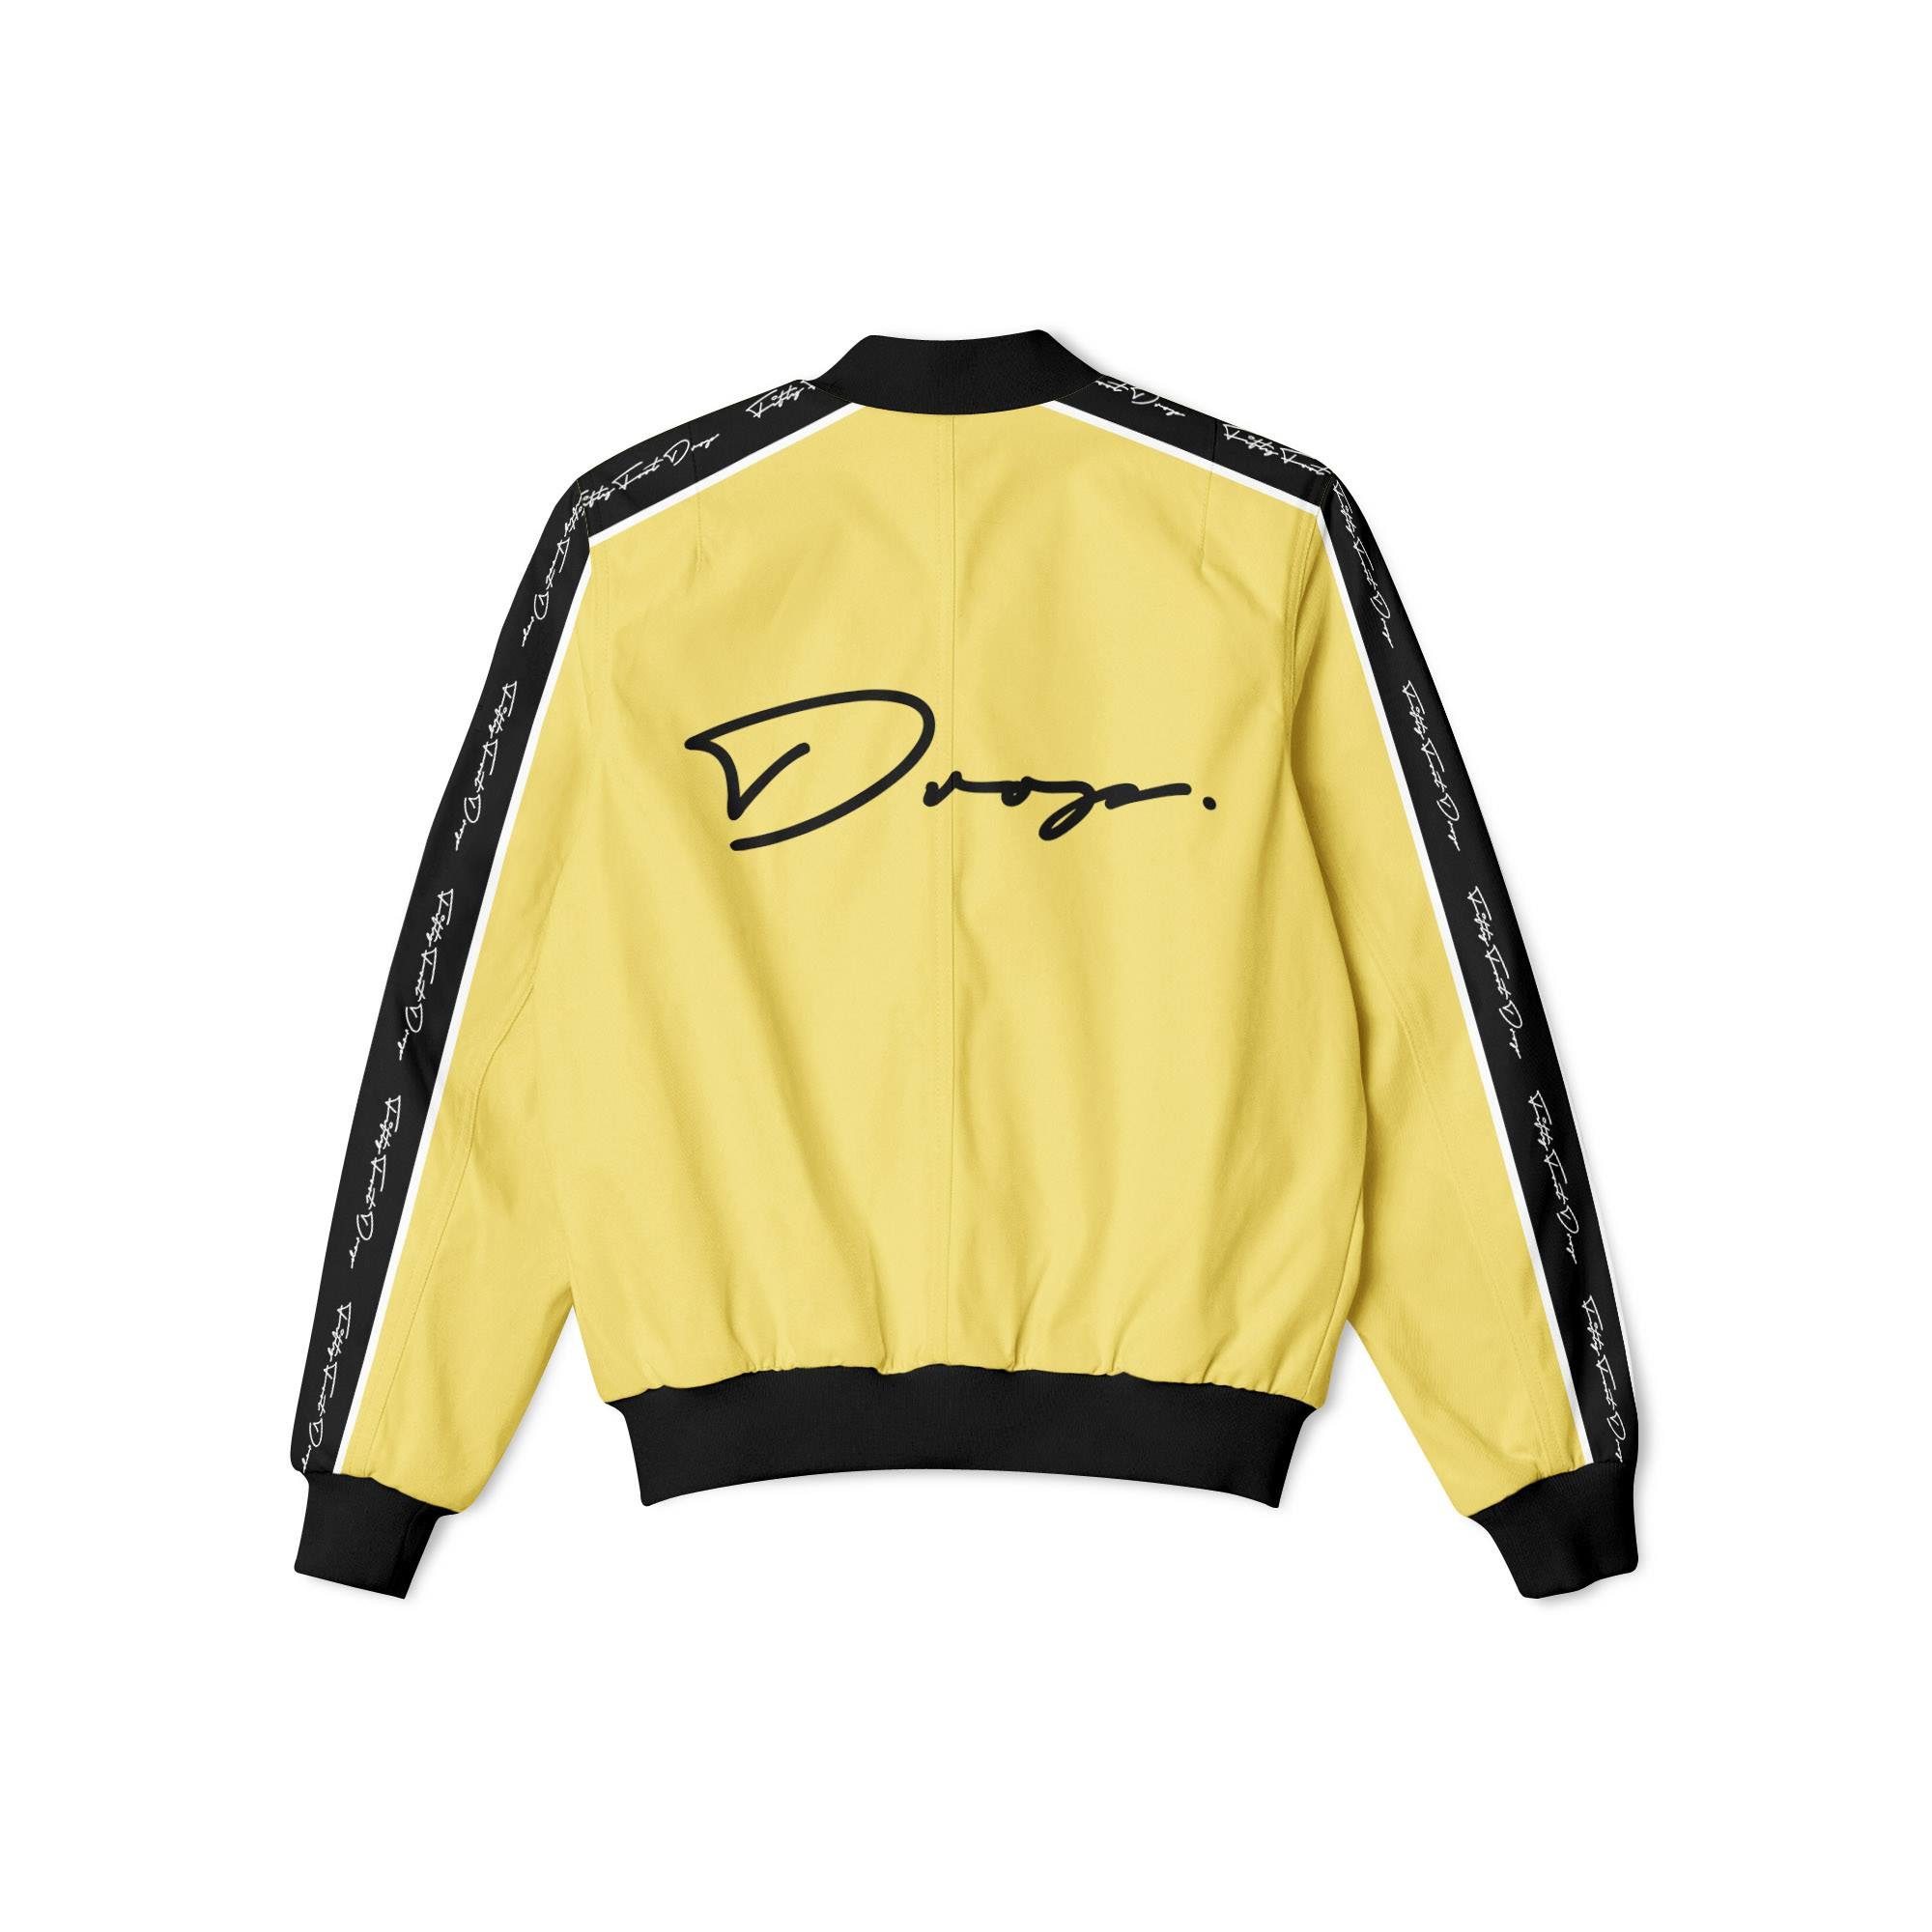 FIFTY FOOT DROP - YELLOW BOMBER JACKET